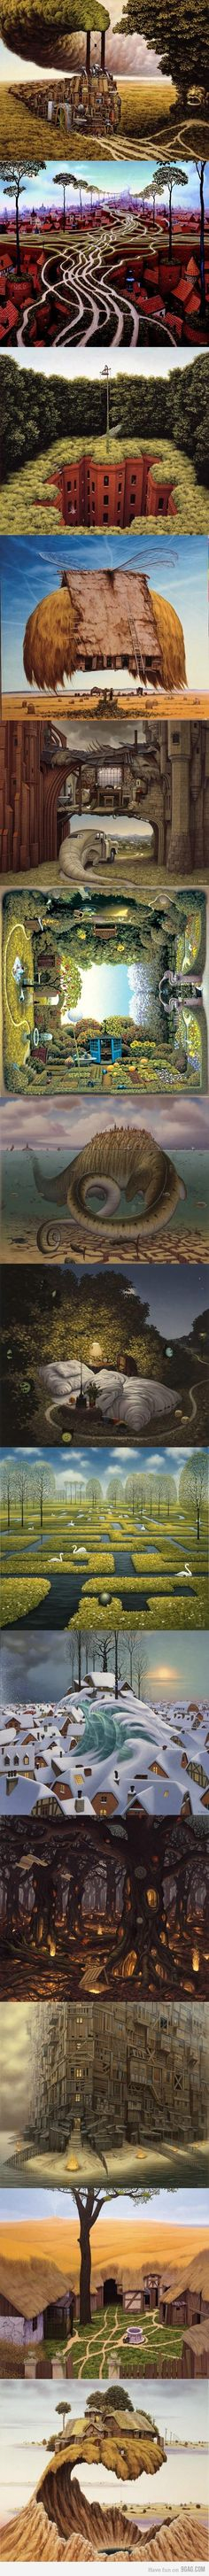 """Any one else thinks of Salvador Dali? It's Jacek Yerka, acutally. Still awesome, though."""